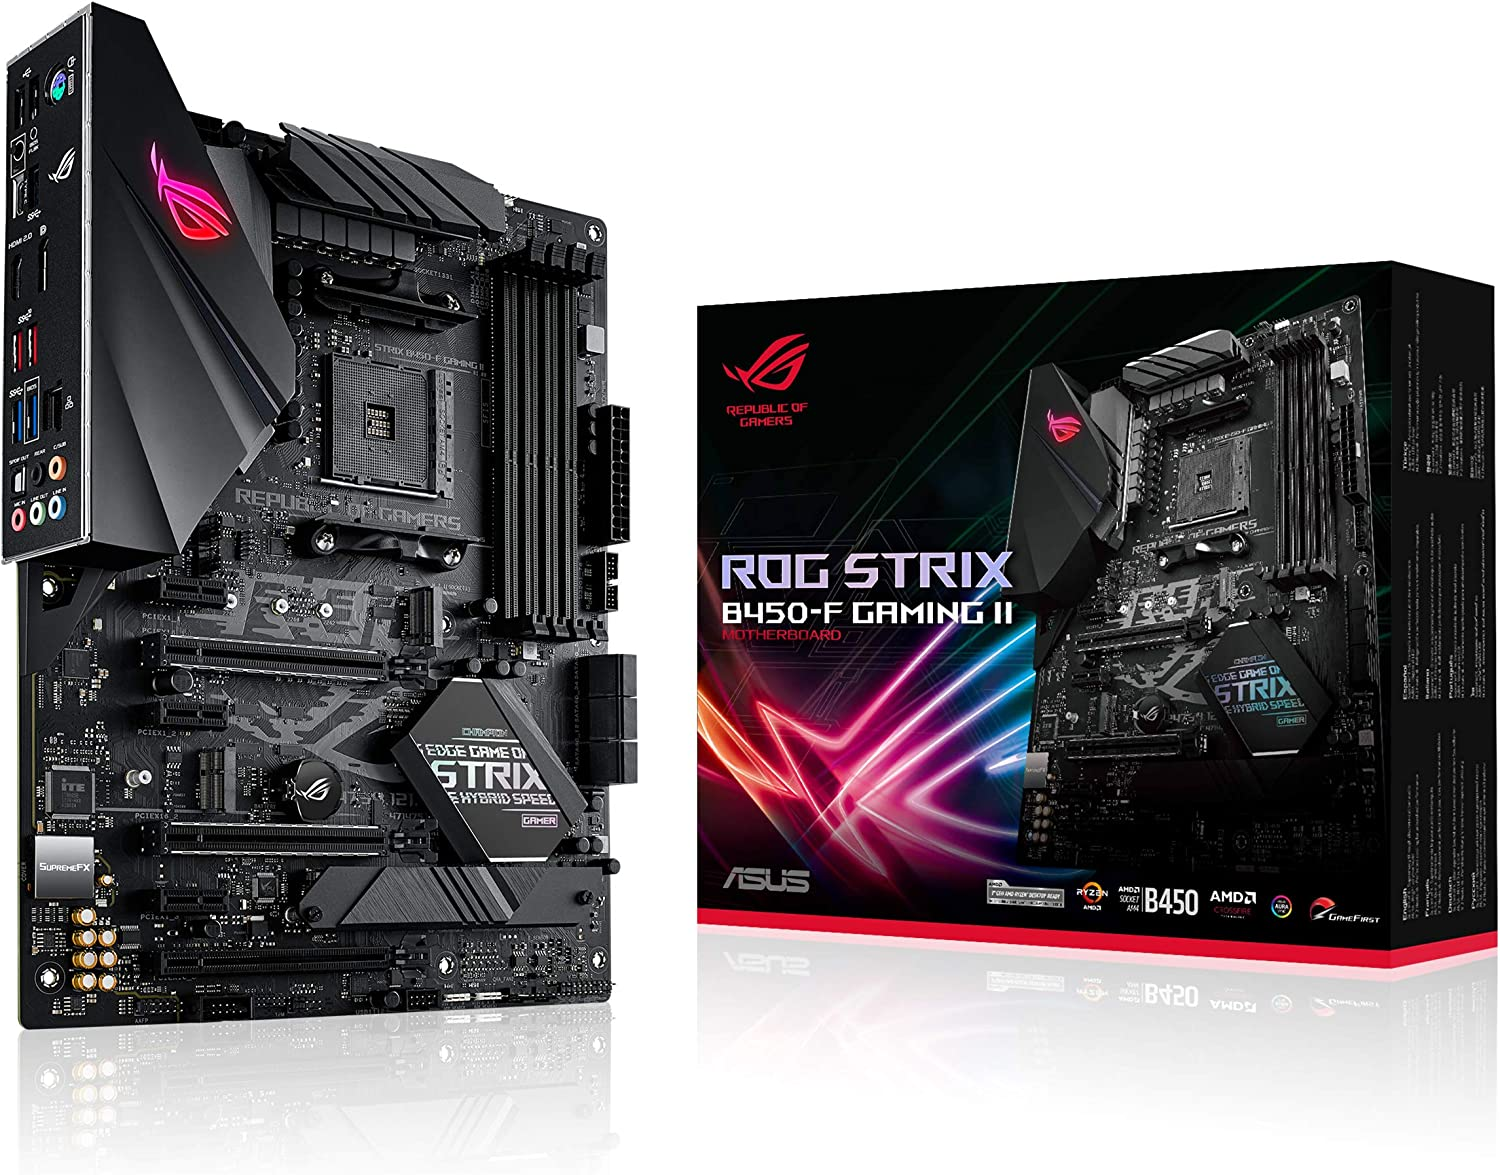 91MWQtTH4bL. AC SL1500 Top 9 Best Motherboard For Ryzen 9 3900x